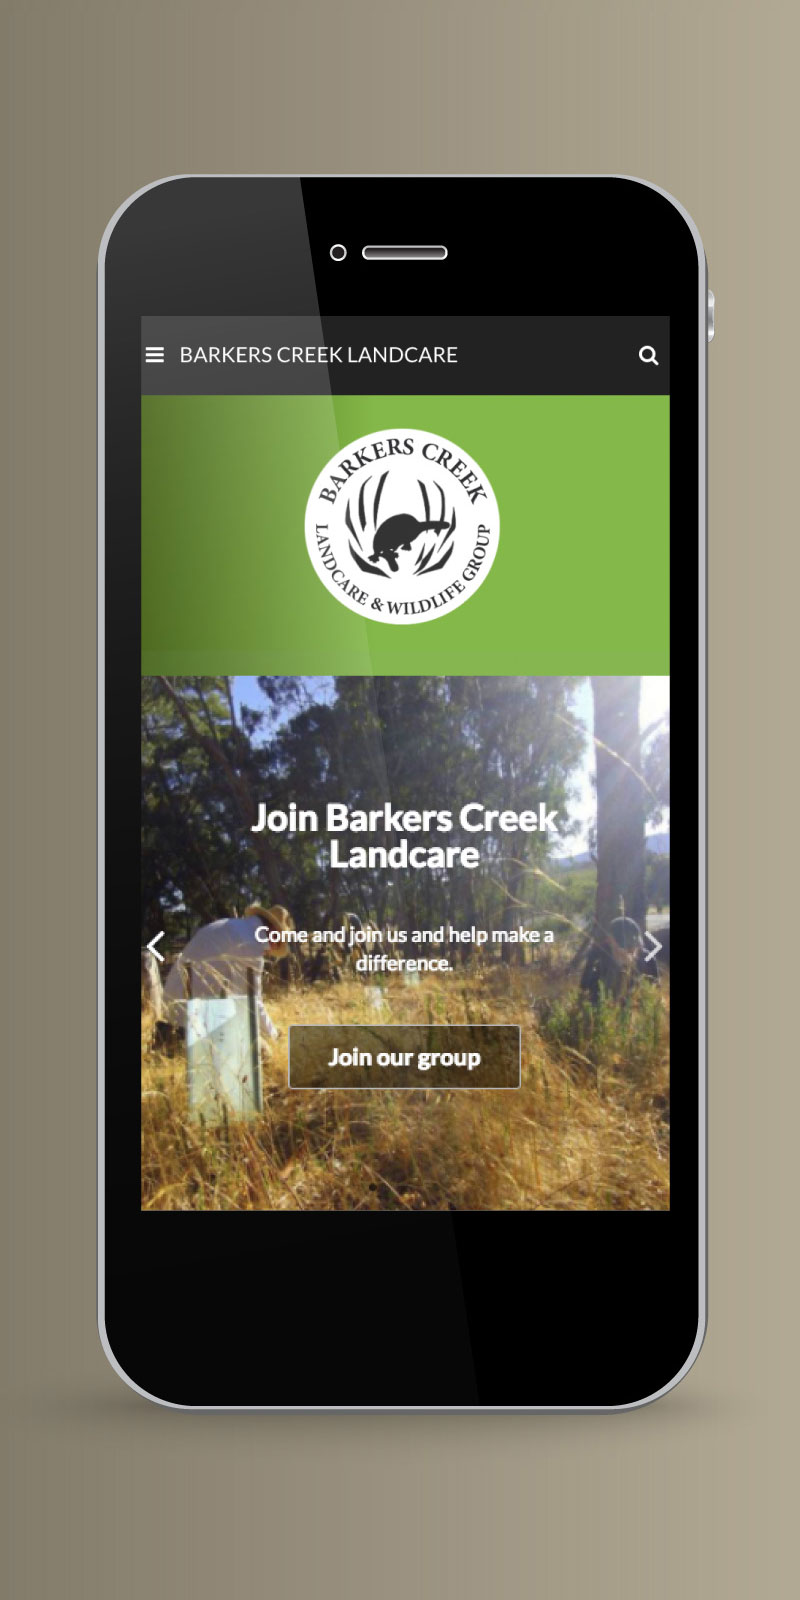 Barkers Creek Landcare website on a mobile